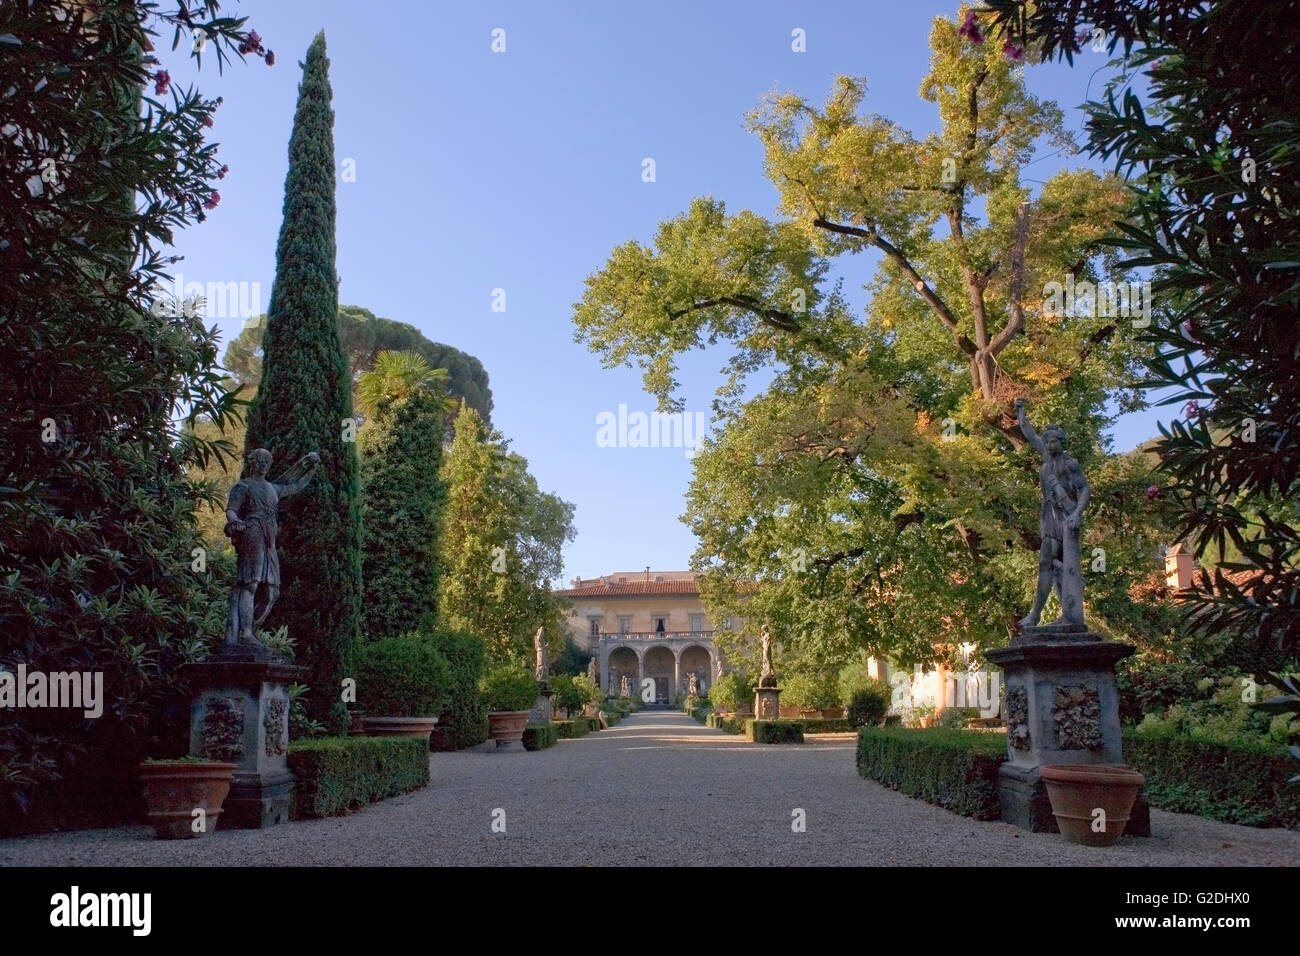 Giardino Corsini al Prato, Florence, Italy: view of the palace down the main path: trees and statuary in the garden Stock Photo